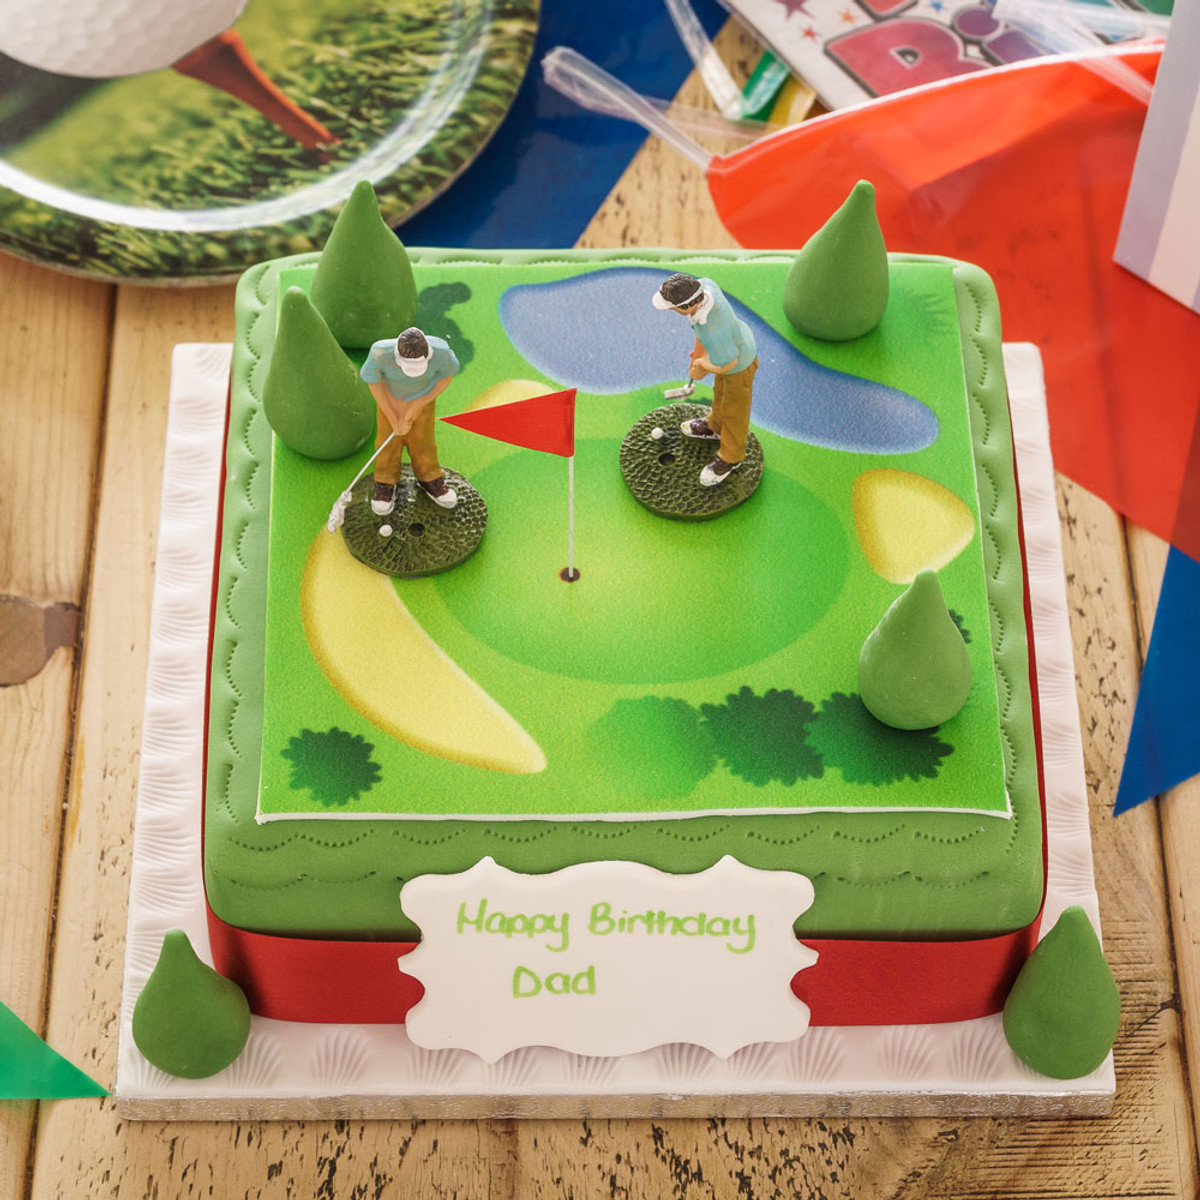 Outstanding Golf Birthday Cake Sporting Birthday Cakes The Brilliant Bakers Birthday Cards Printable Trancafe Filternl